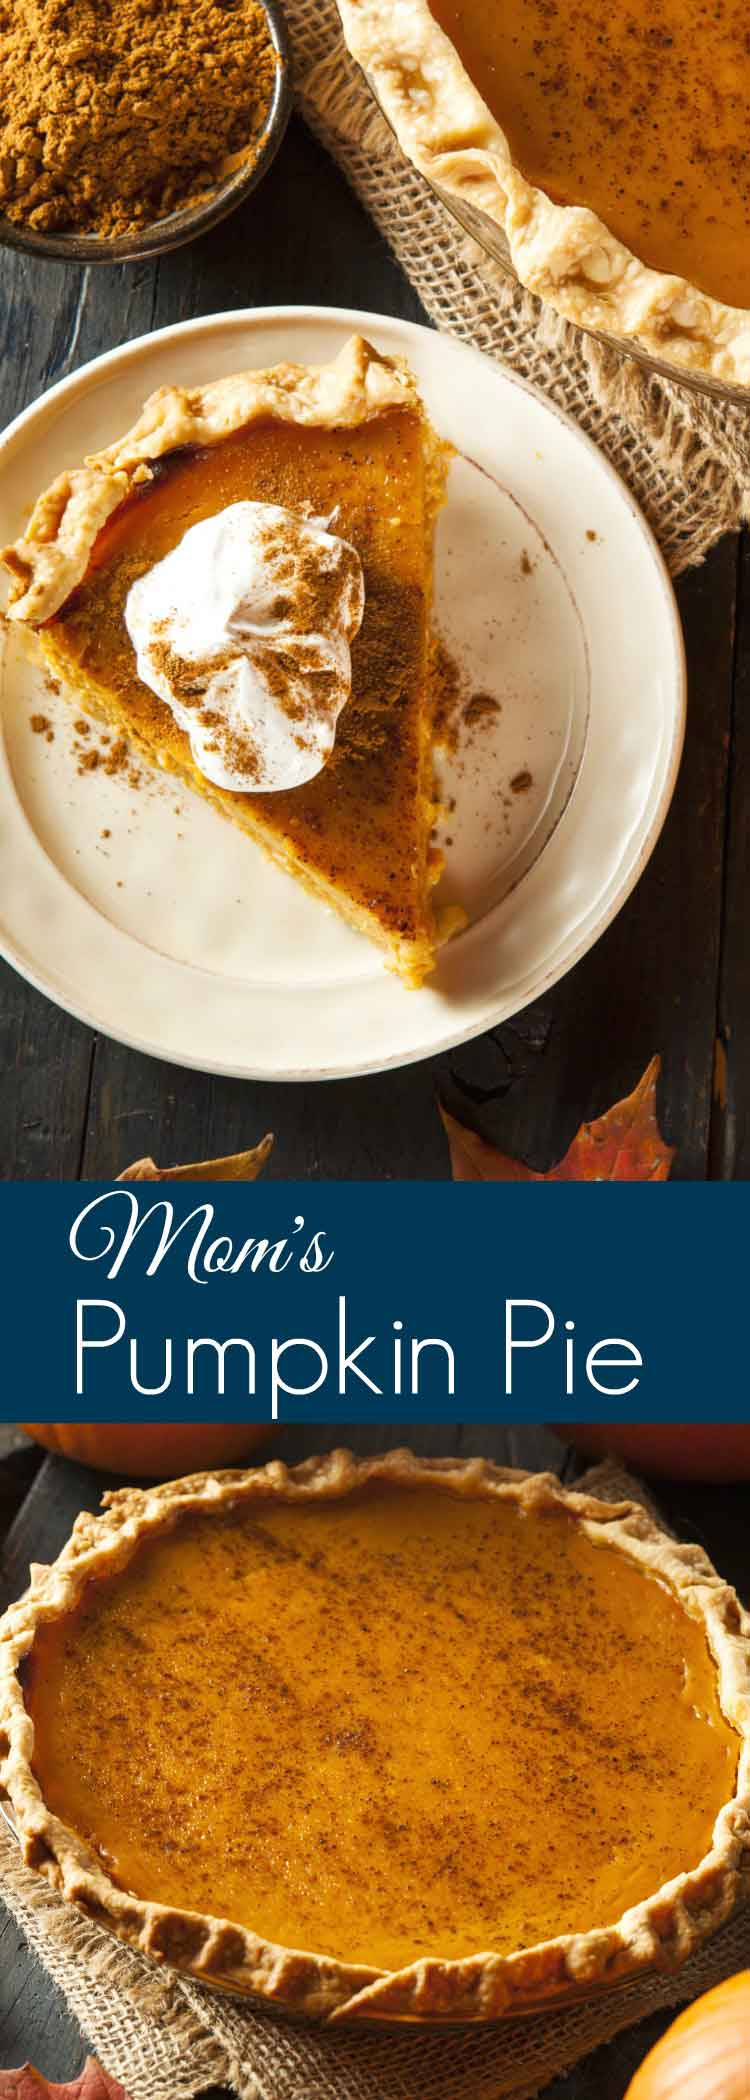 Easy Homemade Pumpkin Pie Recipe you can make from scratch for Breakfast, Lunch & Dinner! This homemade Pumpkin Pie Recipe is BIG on flavour! It's a Winner!